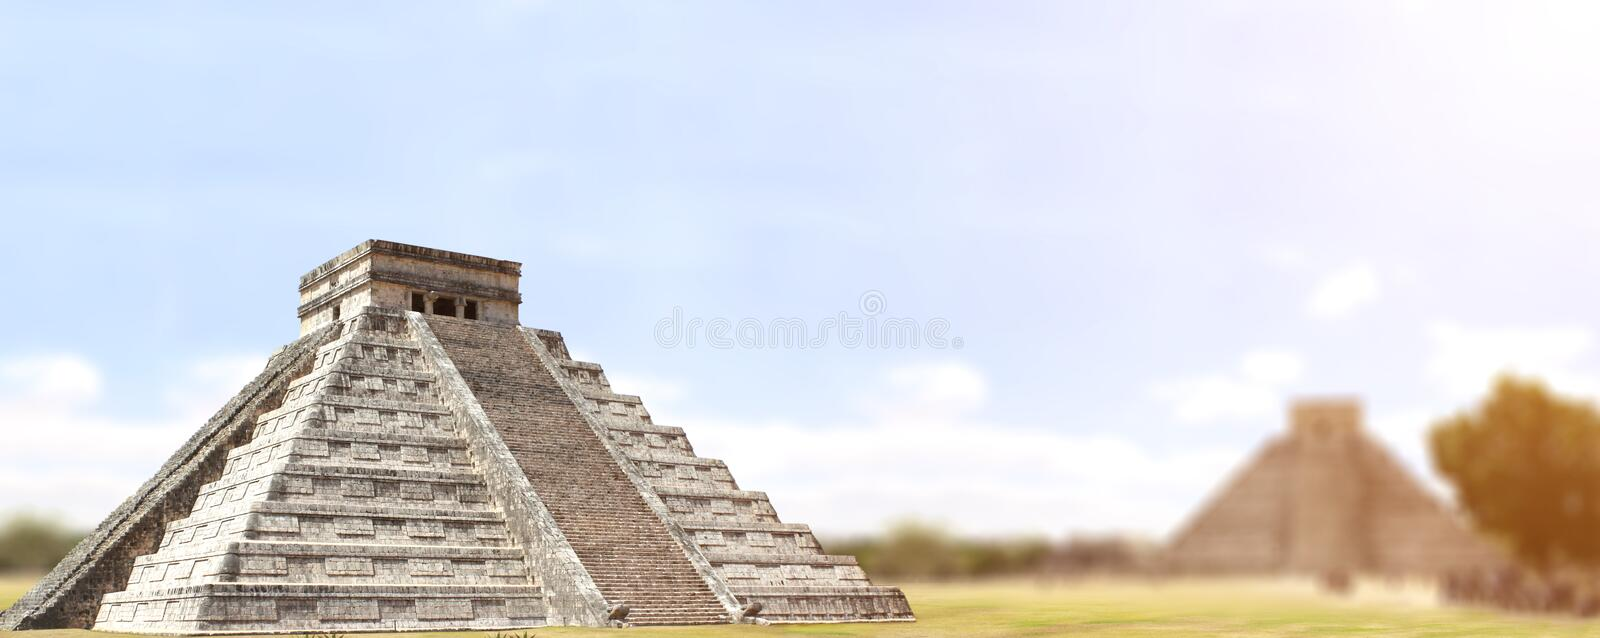 Temple maya antique de Kukulcan de pyramide, Chichen Itza, Yucatan, images stock